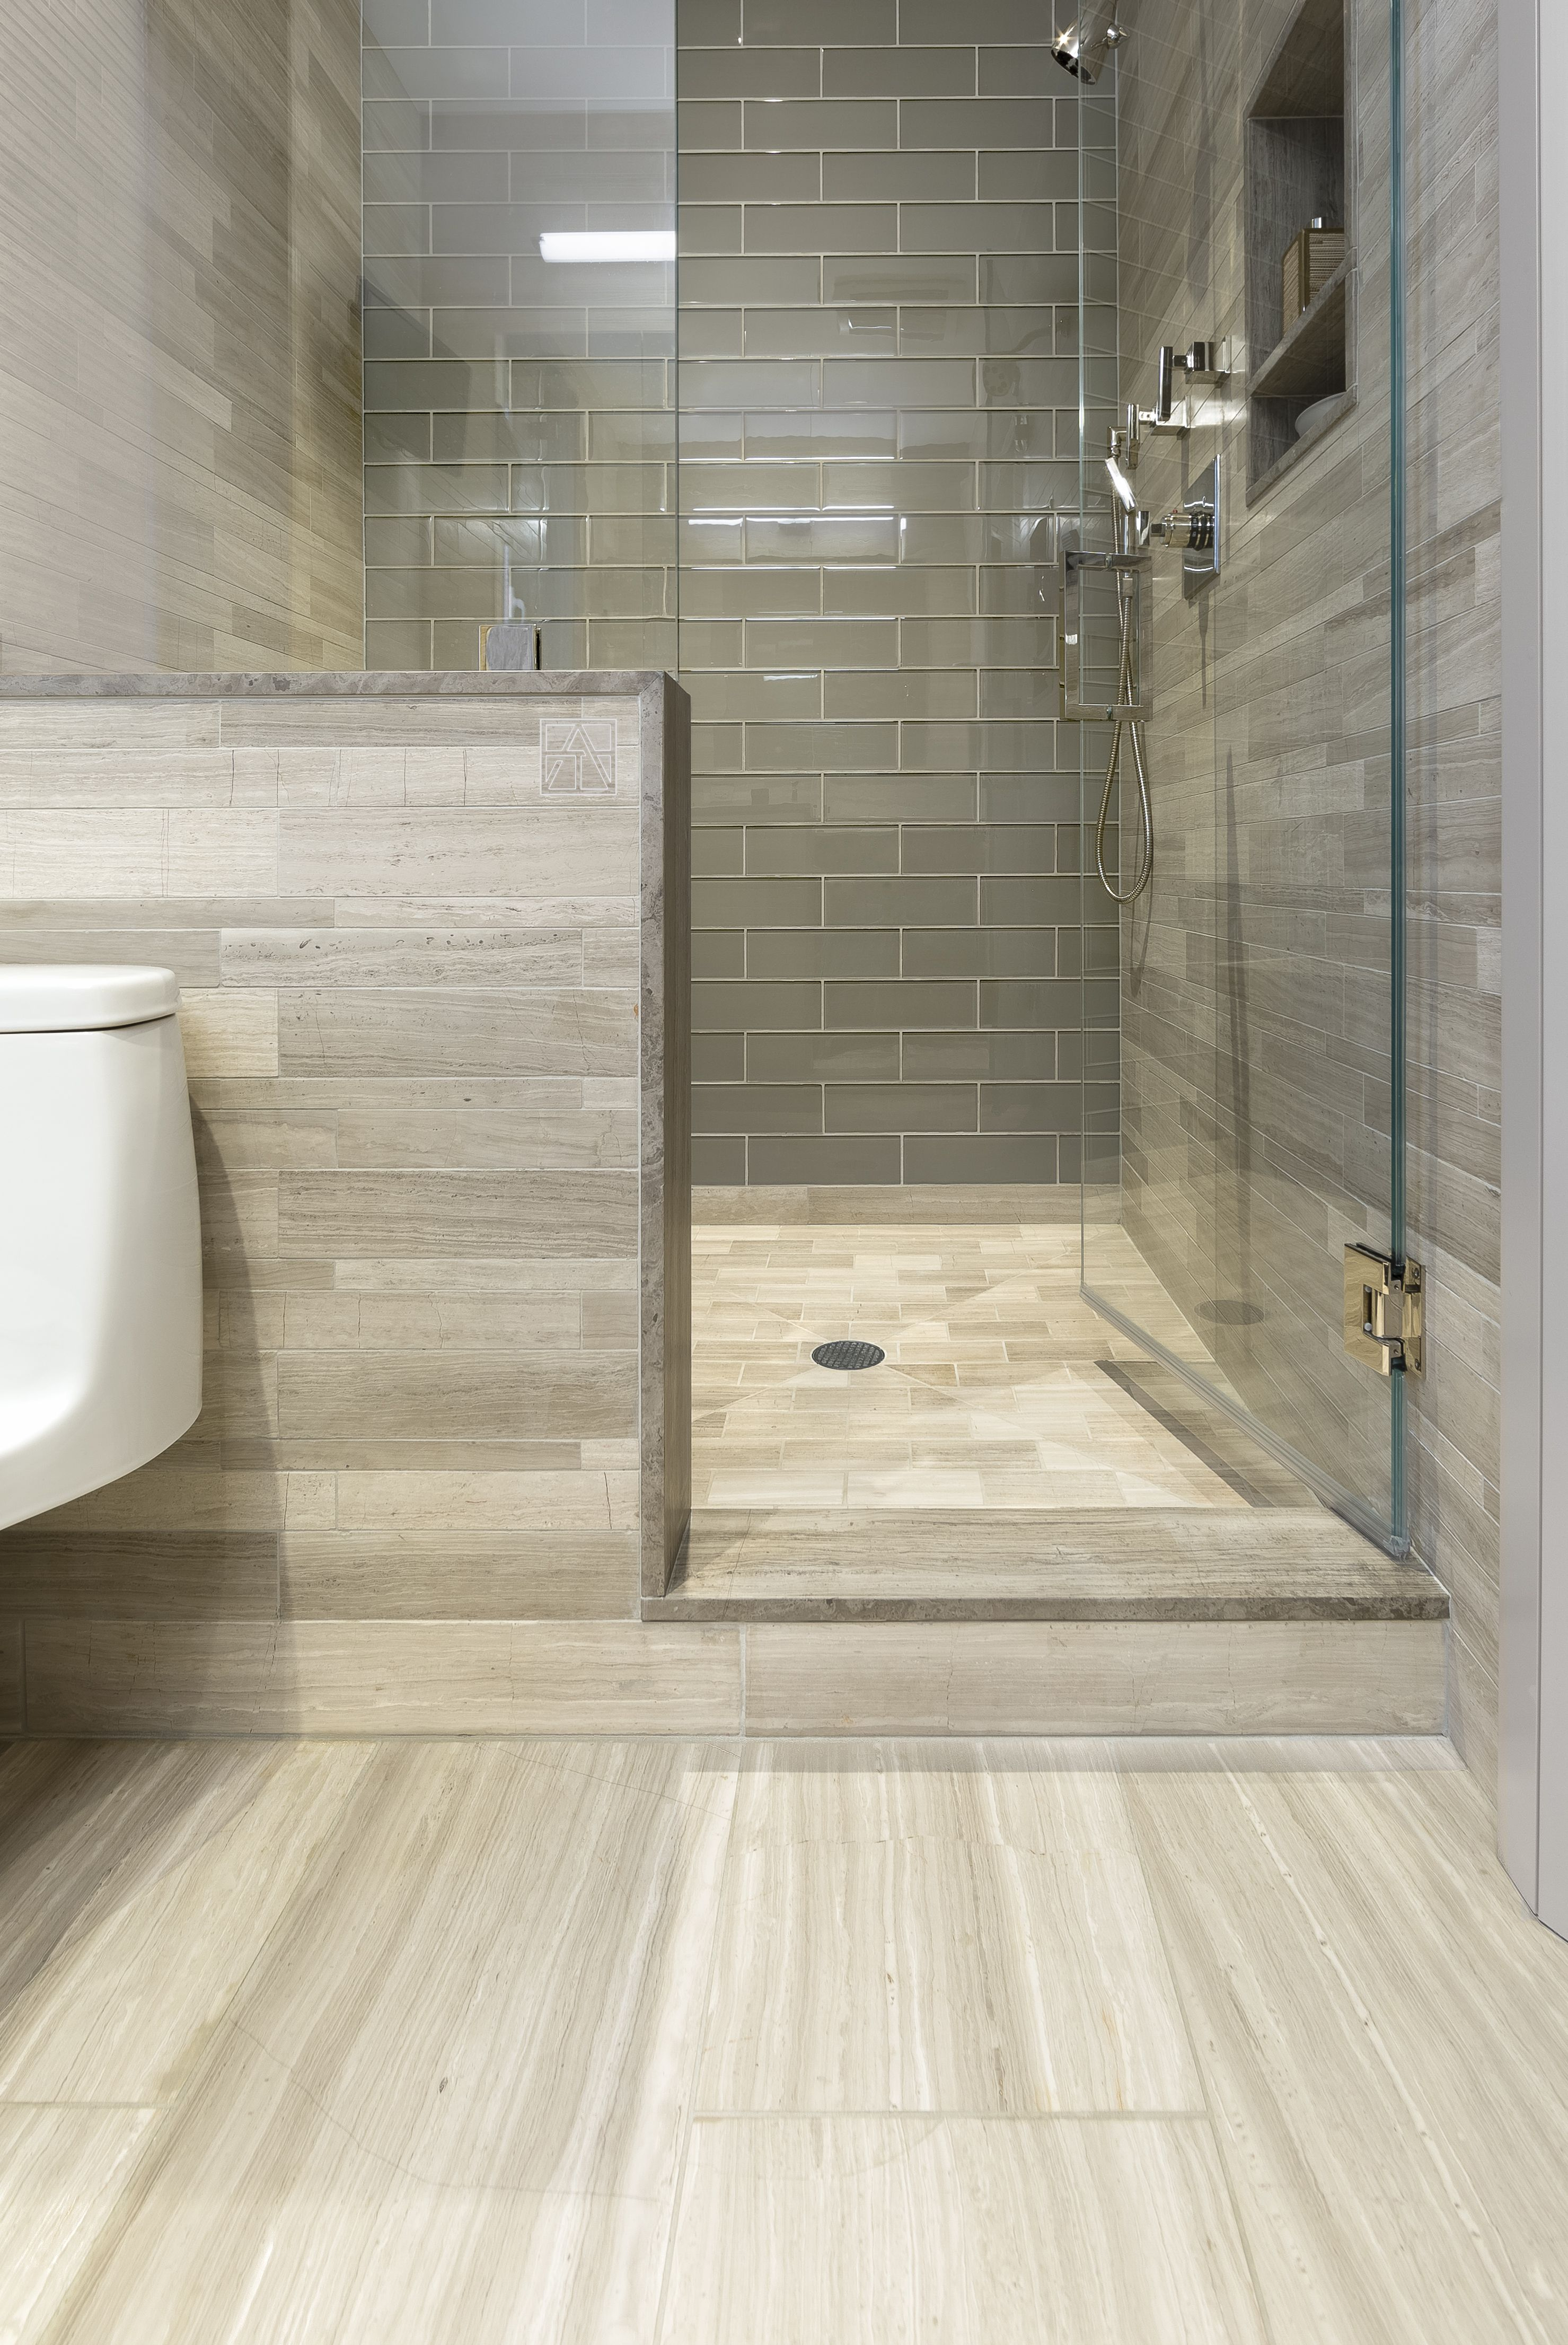 Badezimmer ideen klein artistic tile i vestige collection ash stone tile bathroomredesign